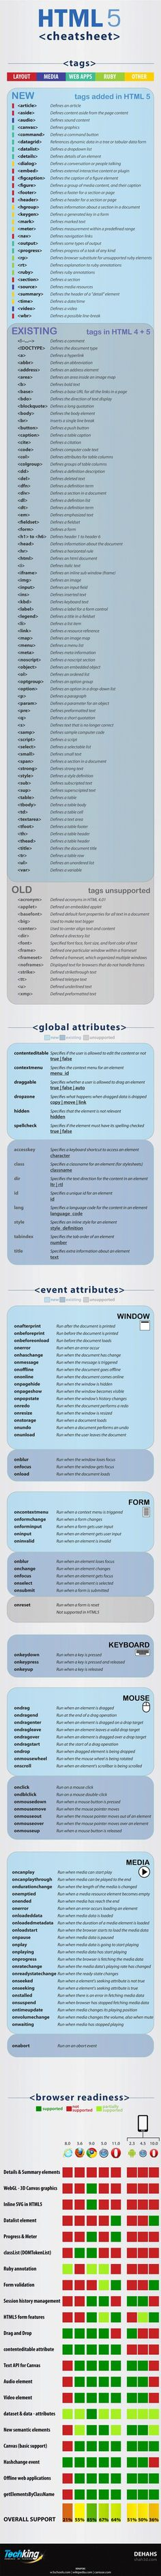 Cheat sheet Html http://hosting.ber-art.nl/html5-cheatsheat/